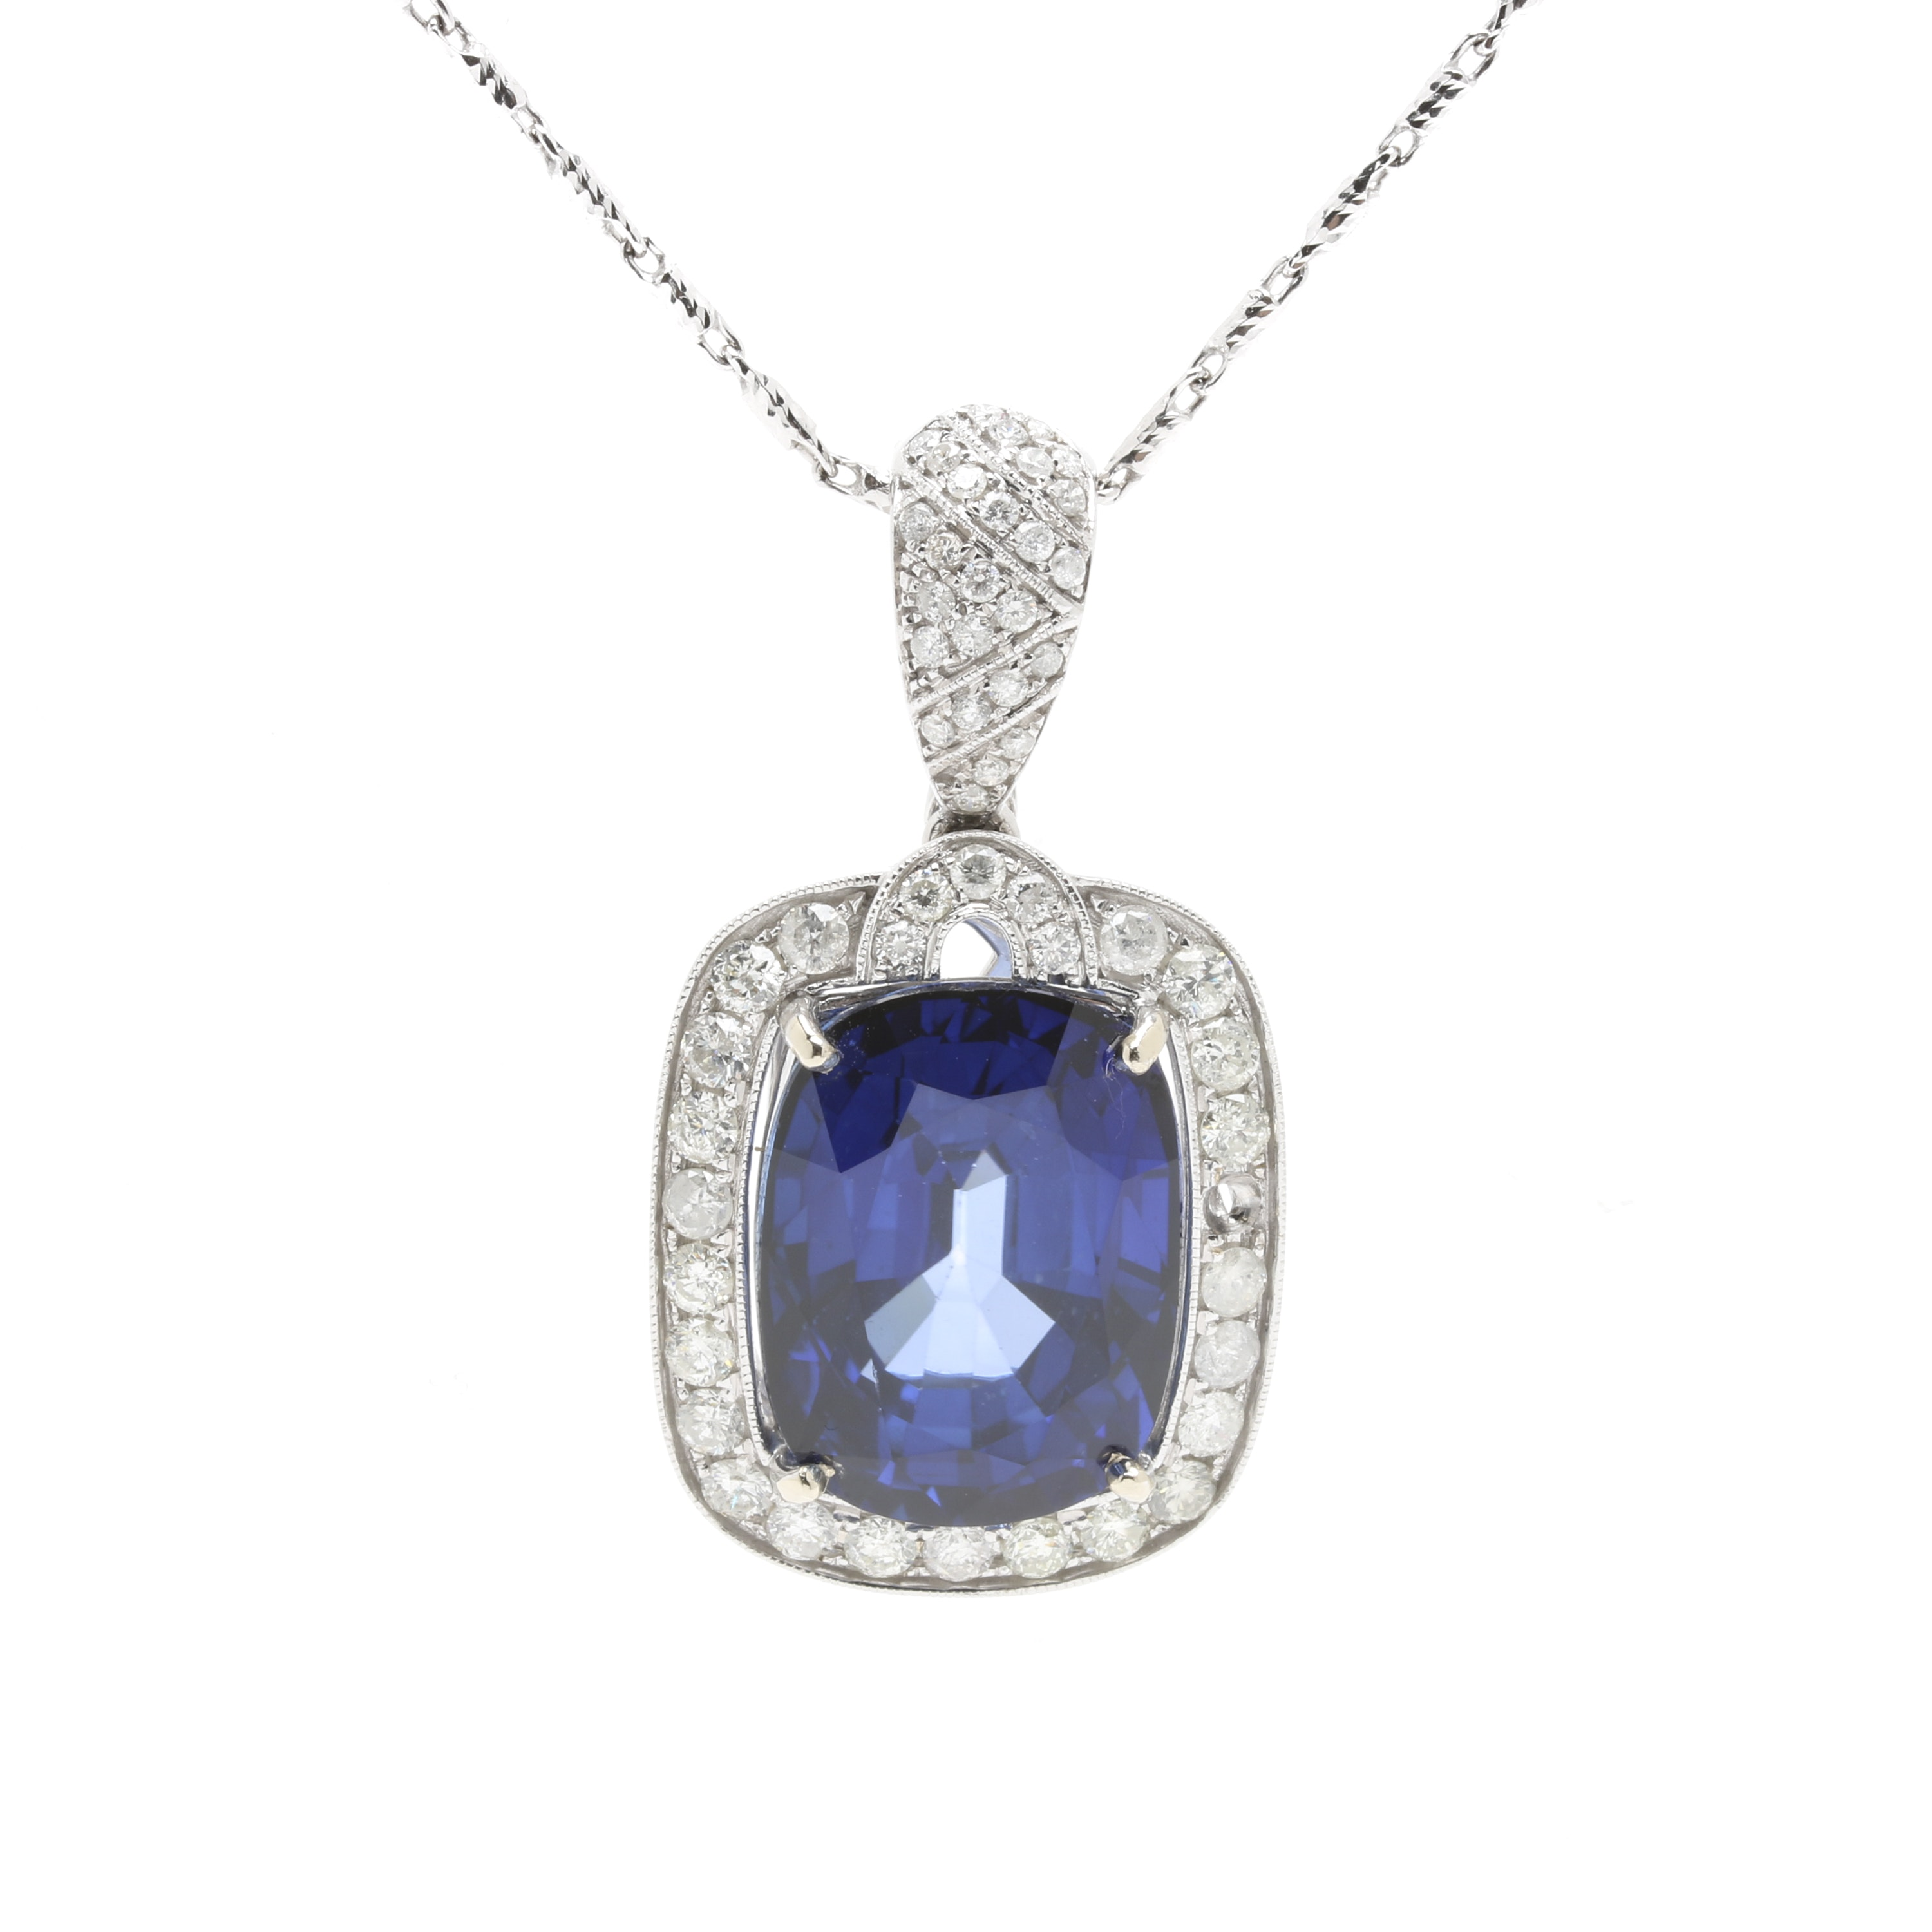 14K White Gold Synthetic Sapphire and 2.00 CTW Diamond Necklace With GIA Report